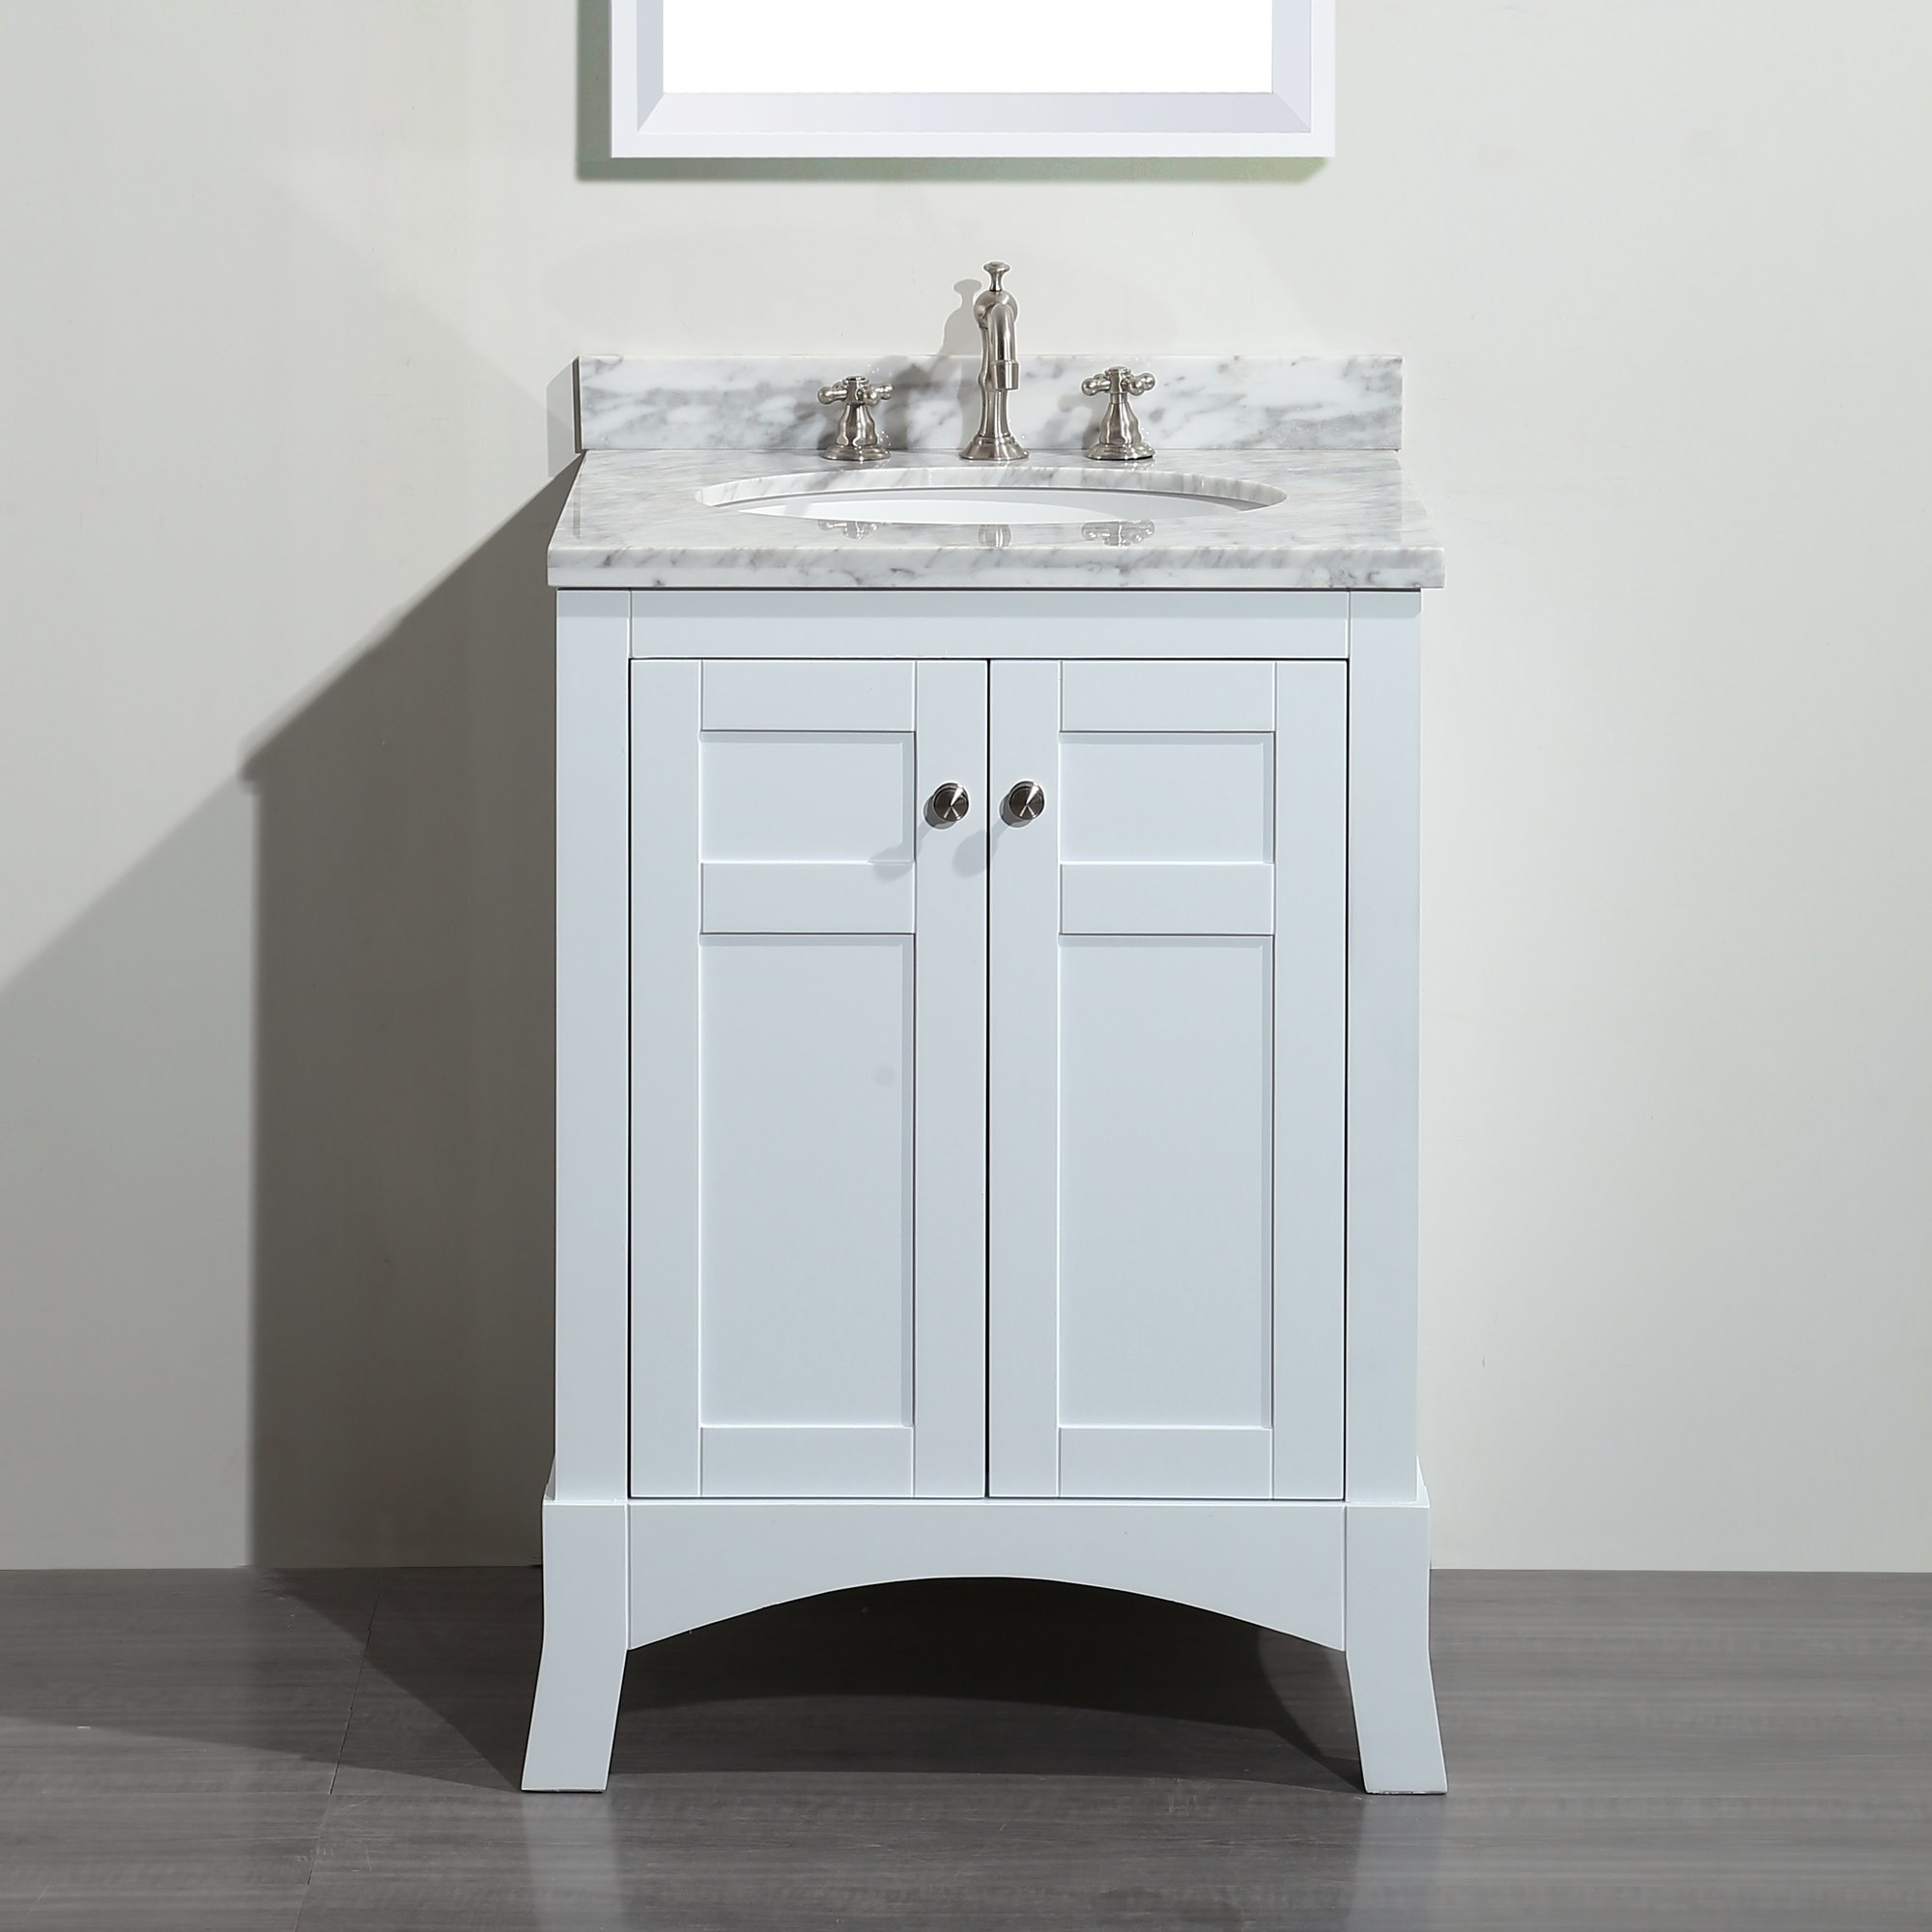 Bathroom Vanity 24 Inches Deep